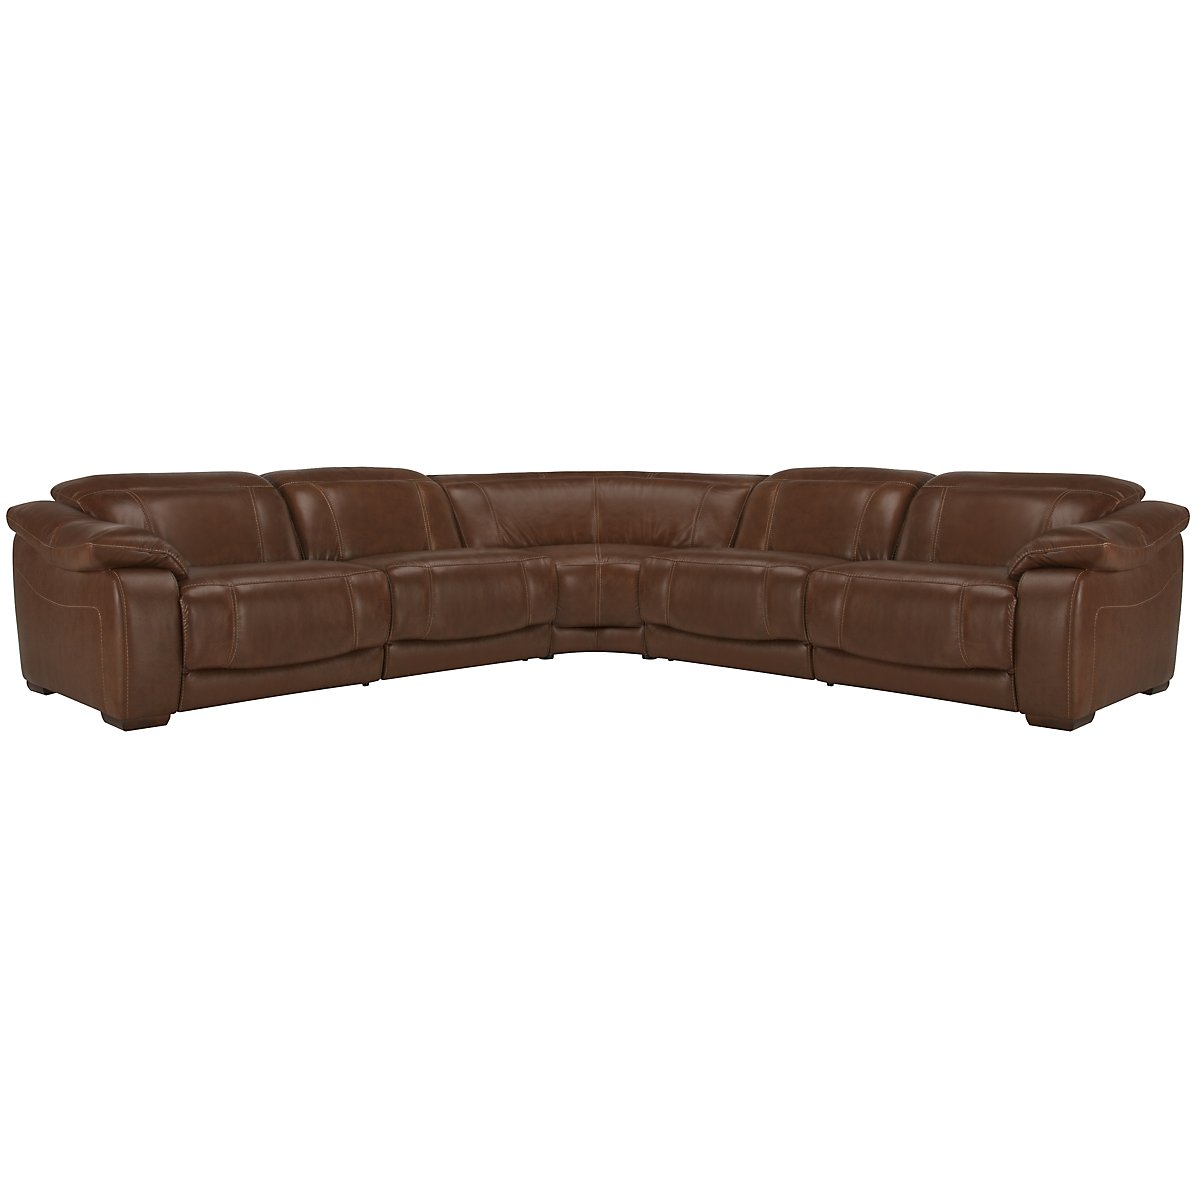 Orion Md Brown Leather & Bonded Leather Small Two-Arm Manually Reclining Sectional